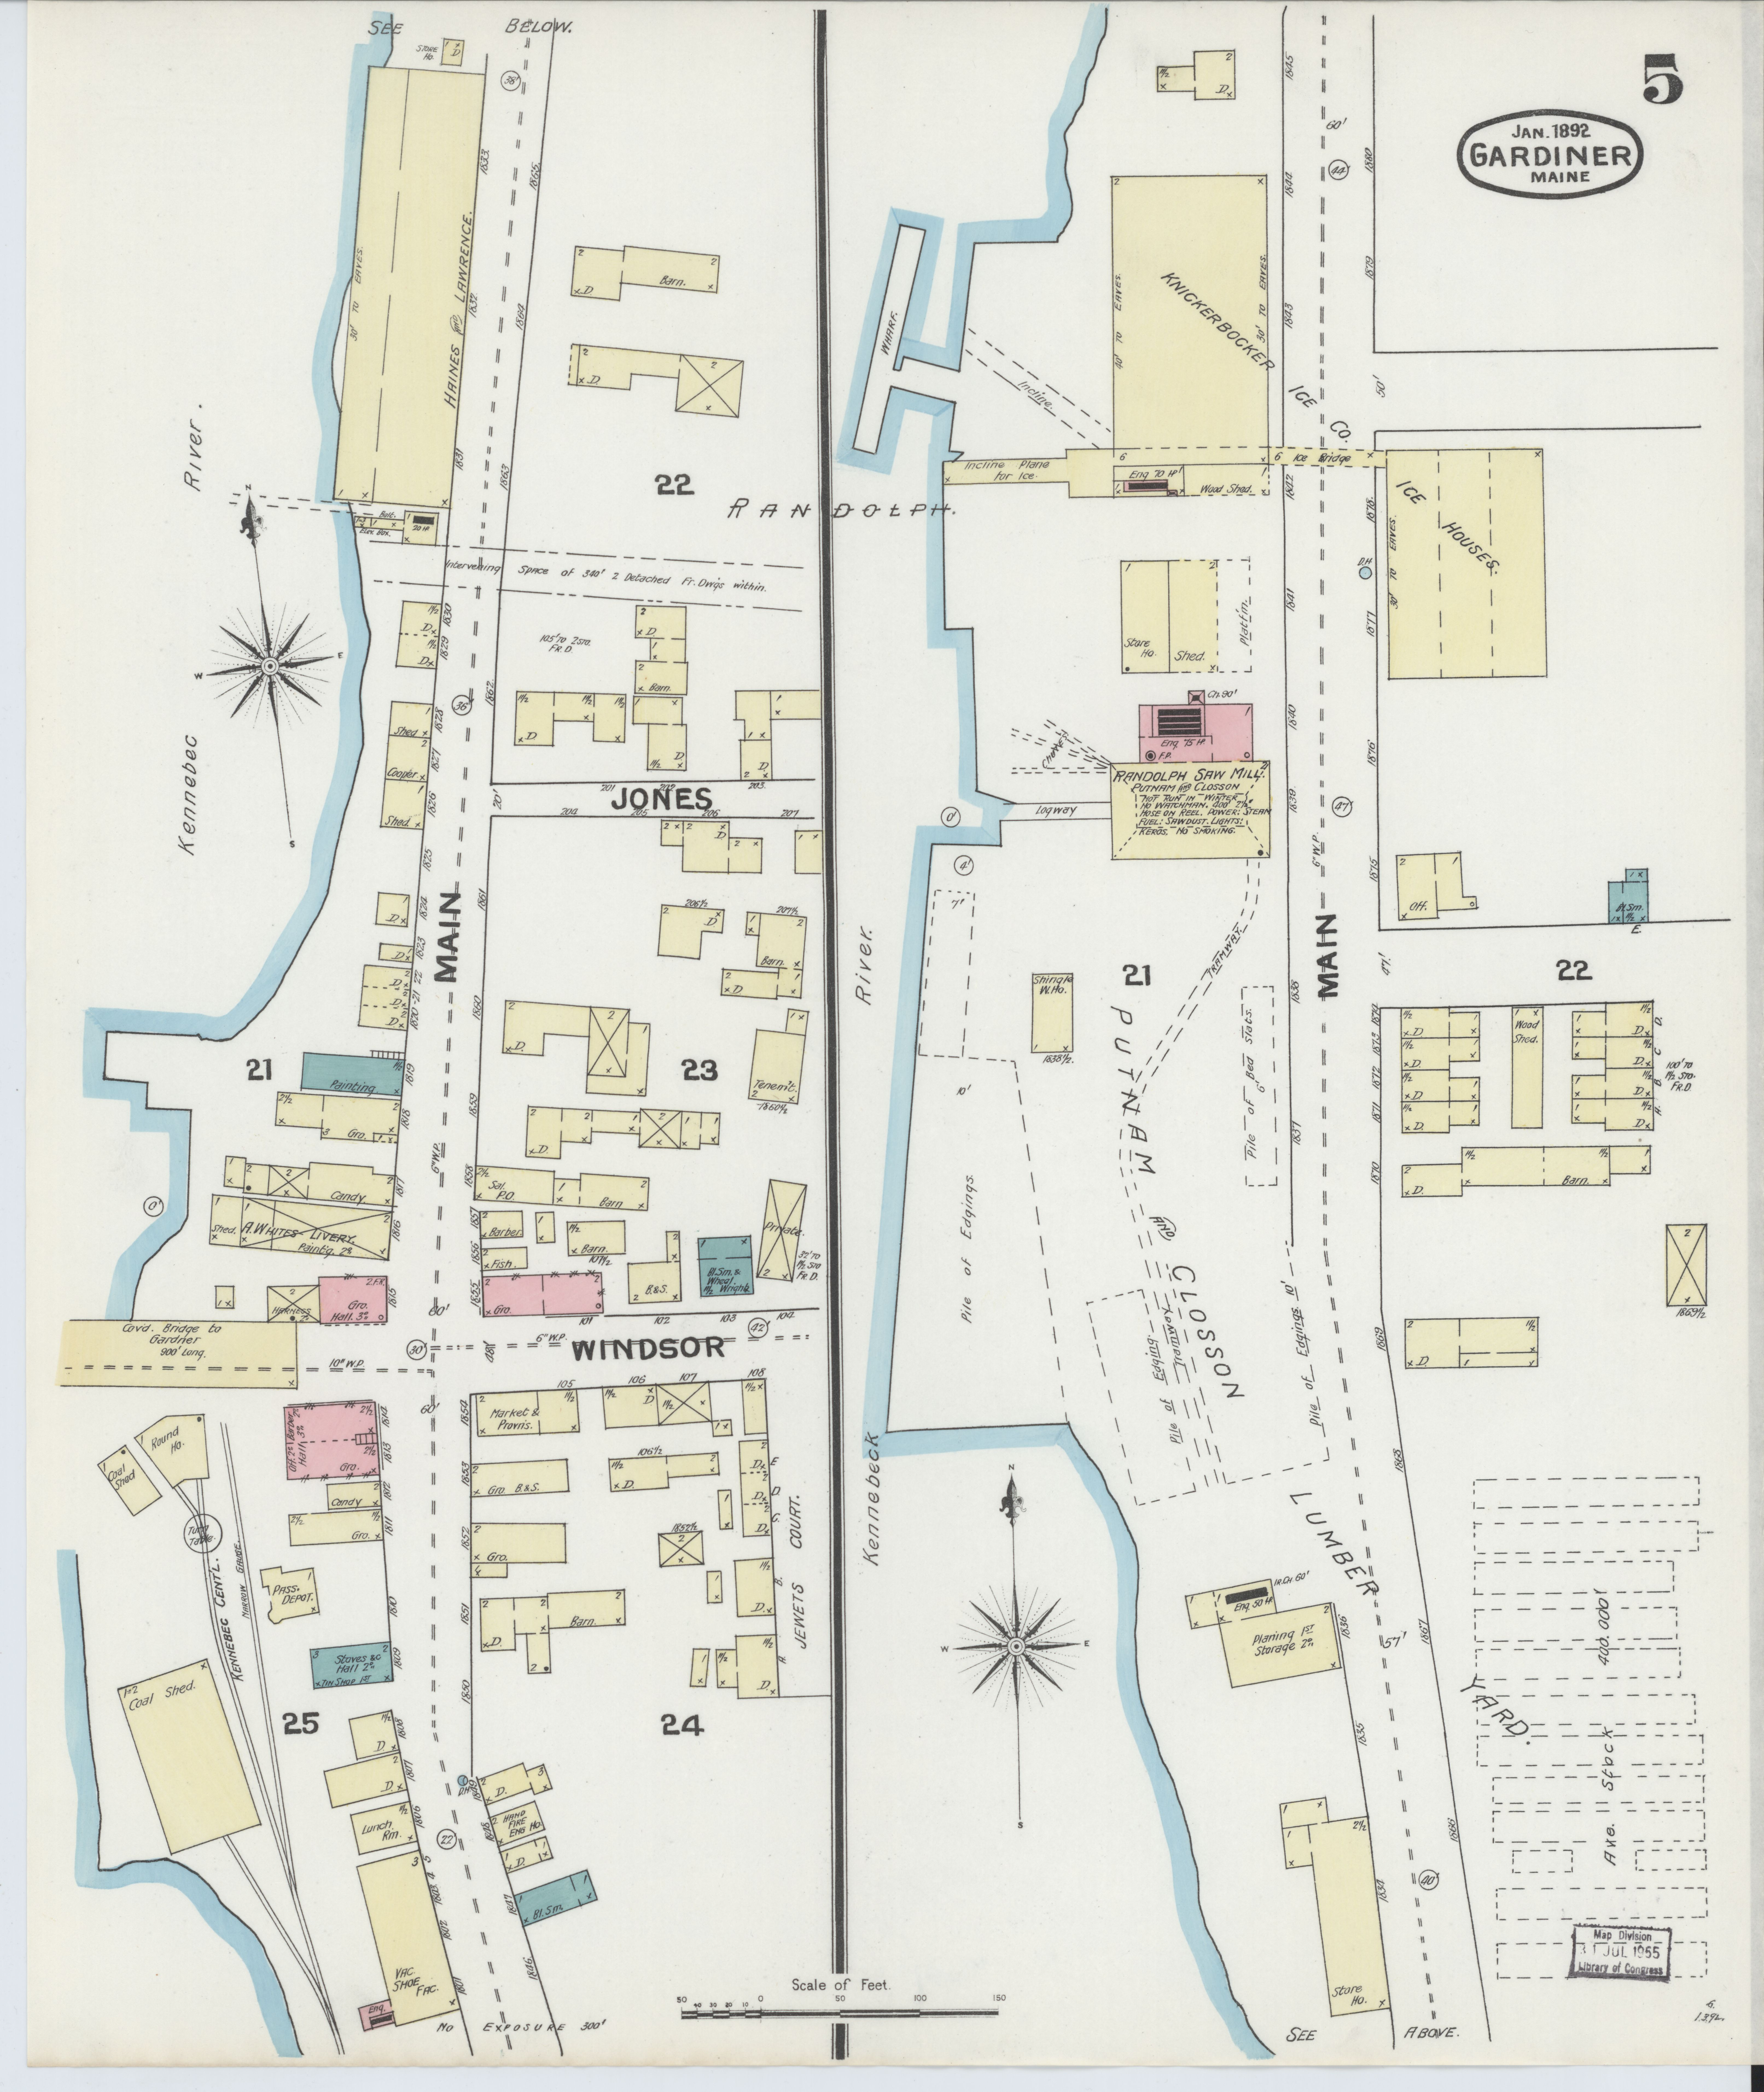 File:Sanborn Fire Insurance Map from Gardiner, Kennebec County ... on